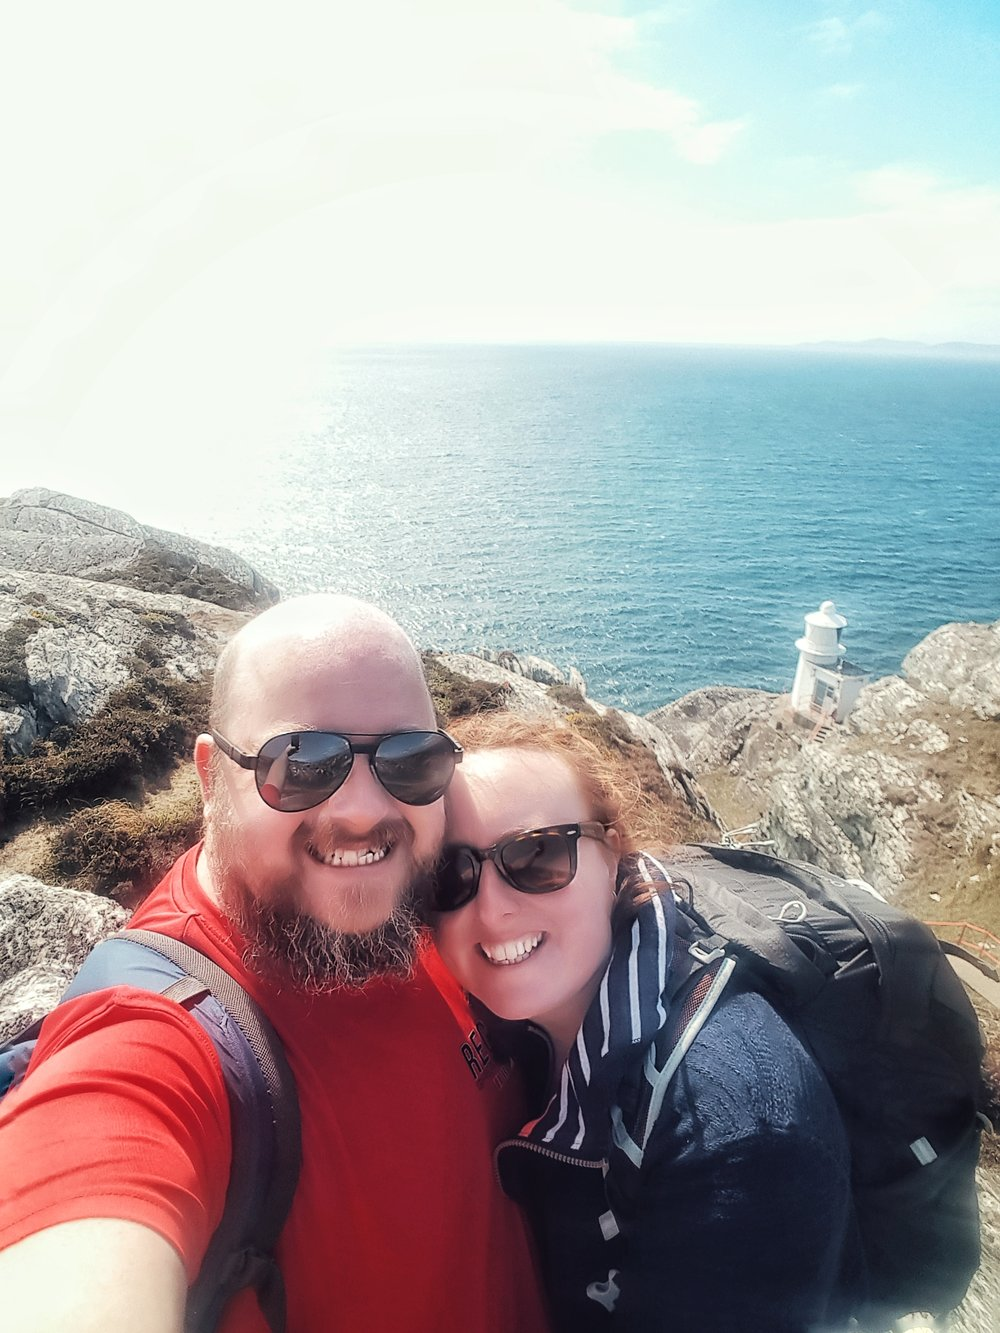 county cork. cork. ireland. irish. history. city. house sitting. old. travel. travel photography. travel photographer.  selfie at the lighthouse. sheeps head lighthouse.jpg